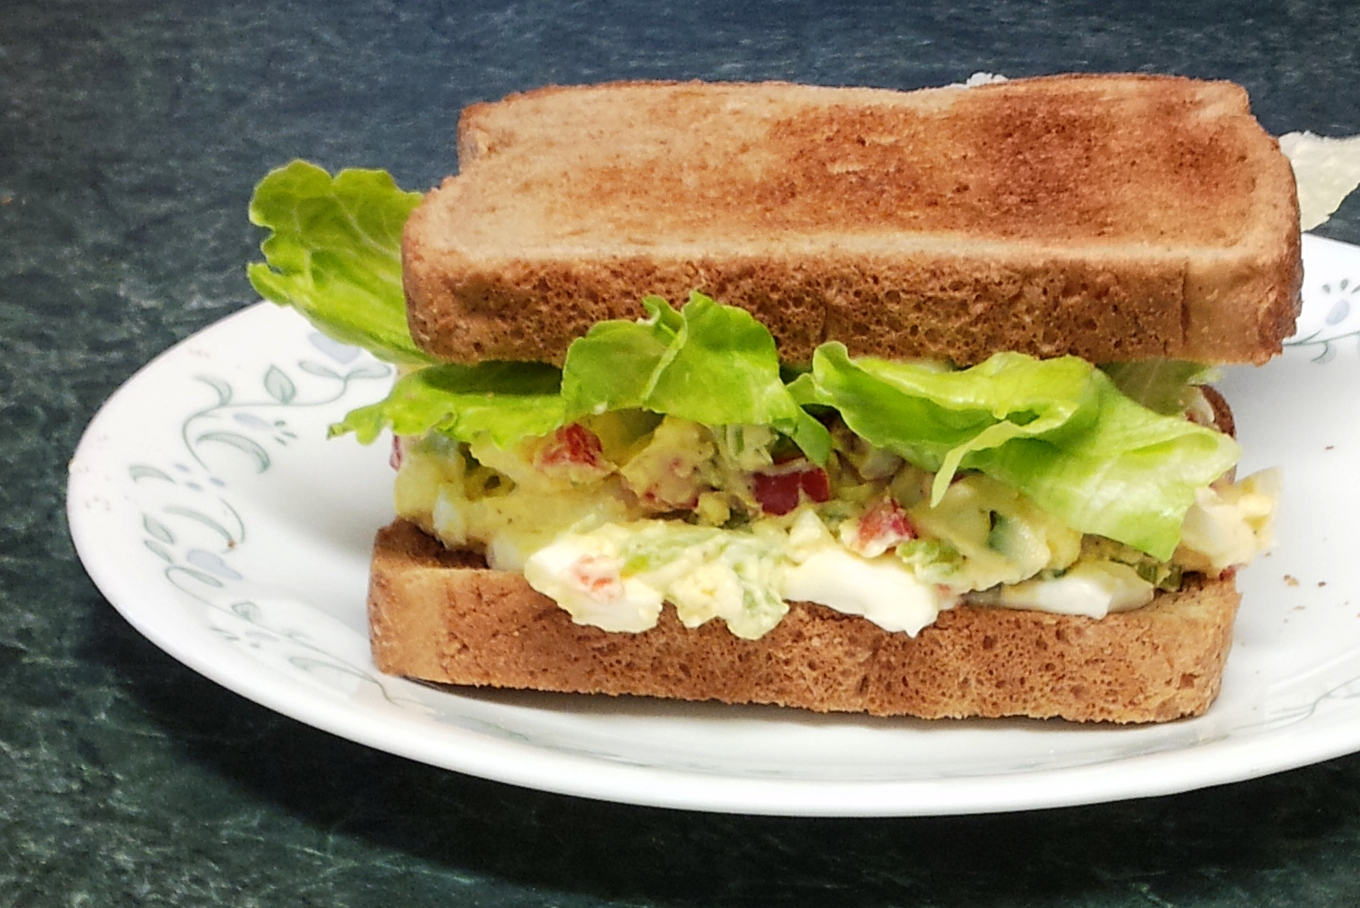 Debbi Does Dinner... Healthy & Low Calorie: Egg Salad Sandwiches